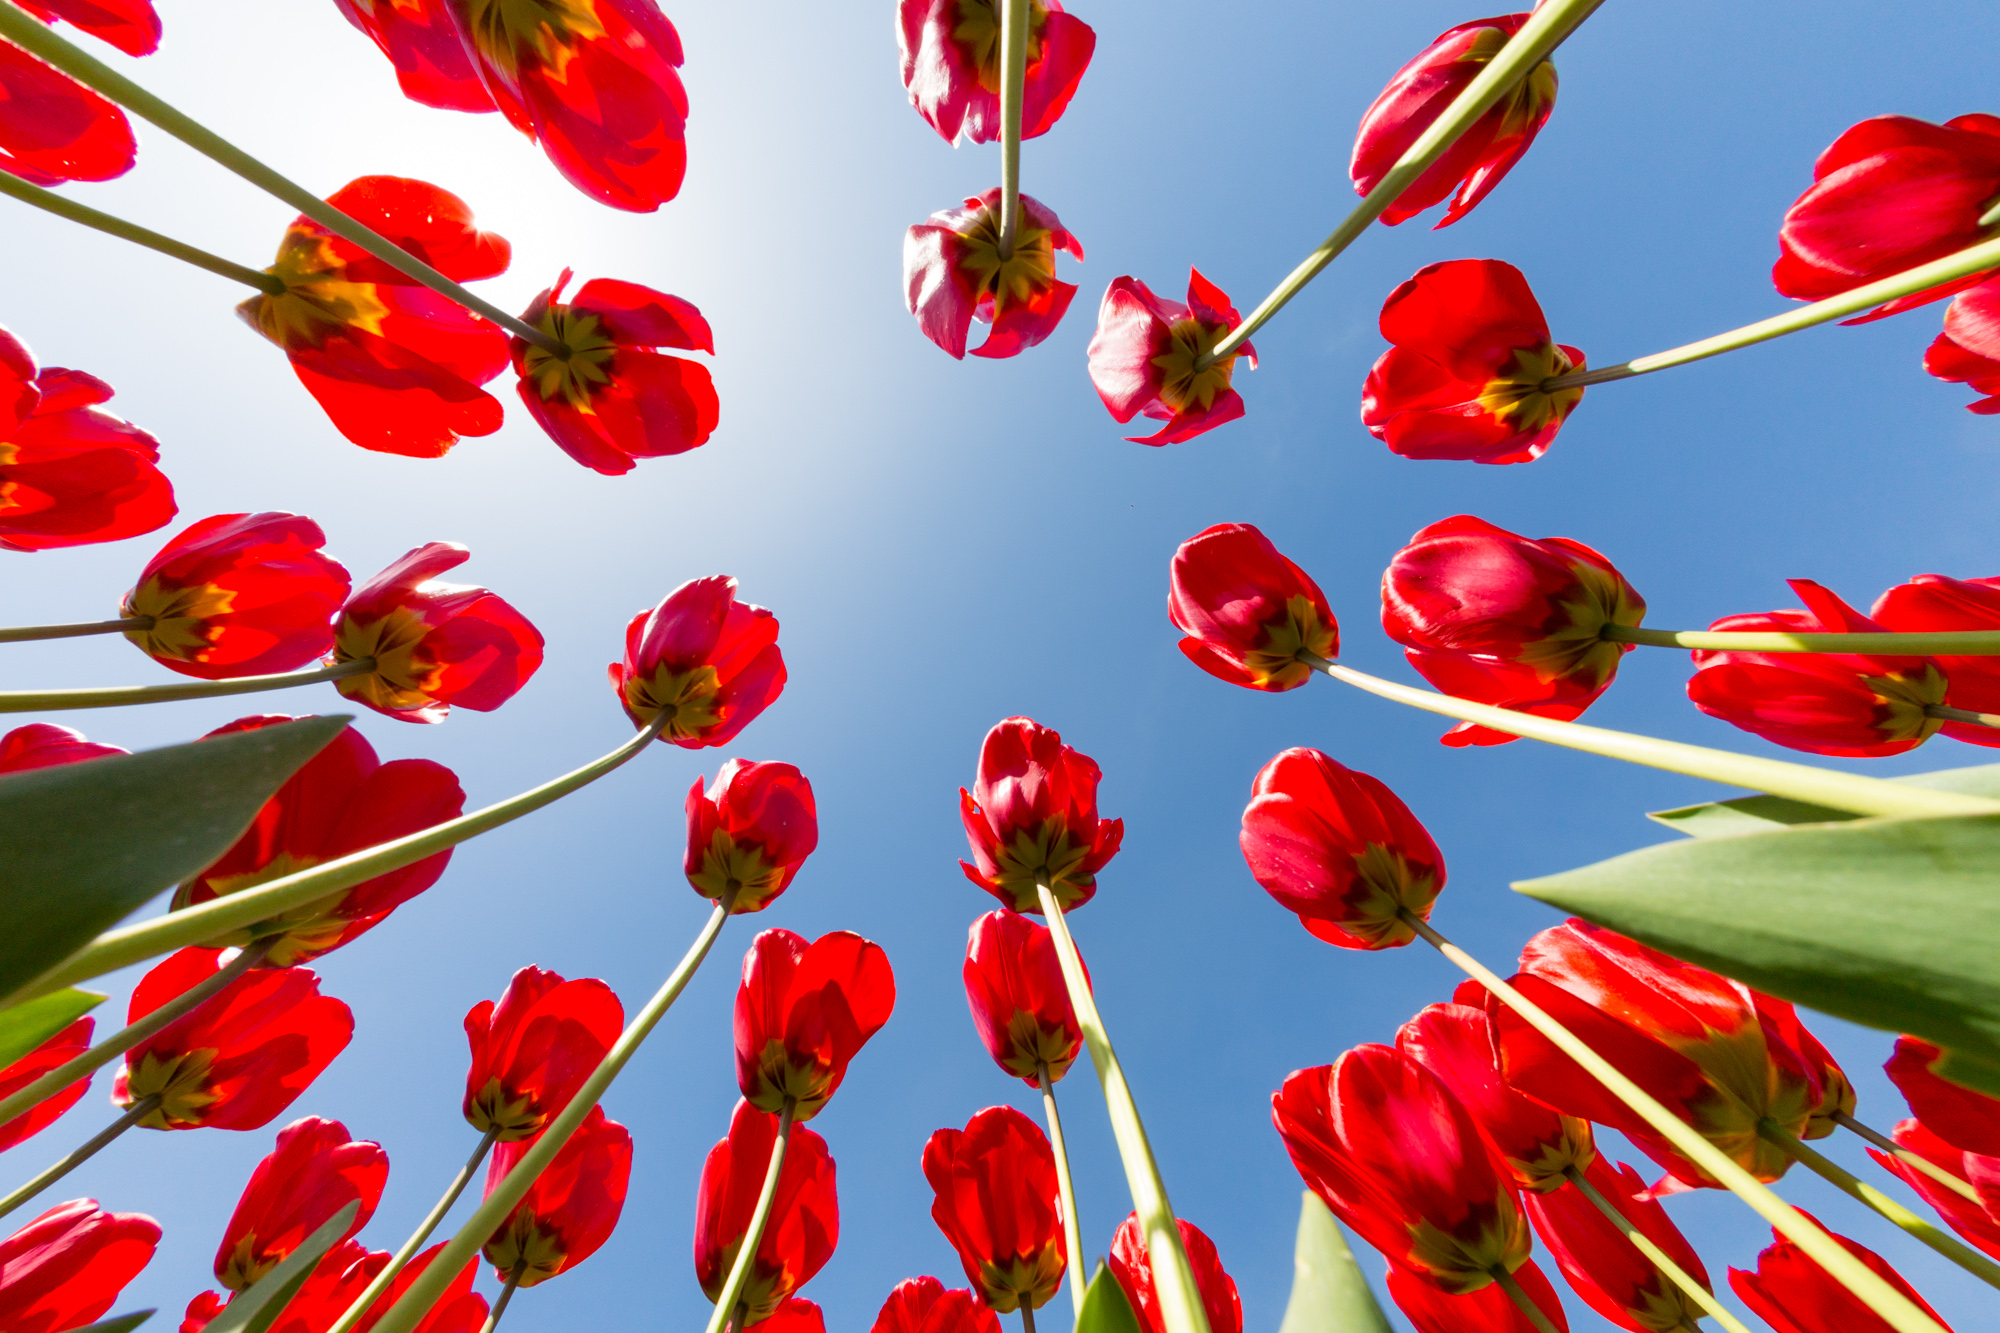 Multiple red tulips reaching to the sky